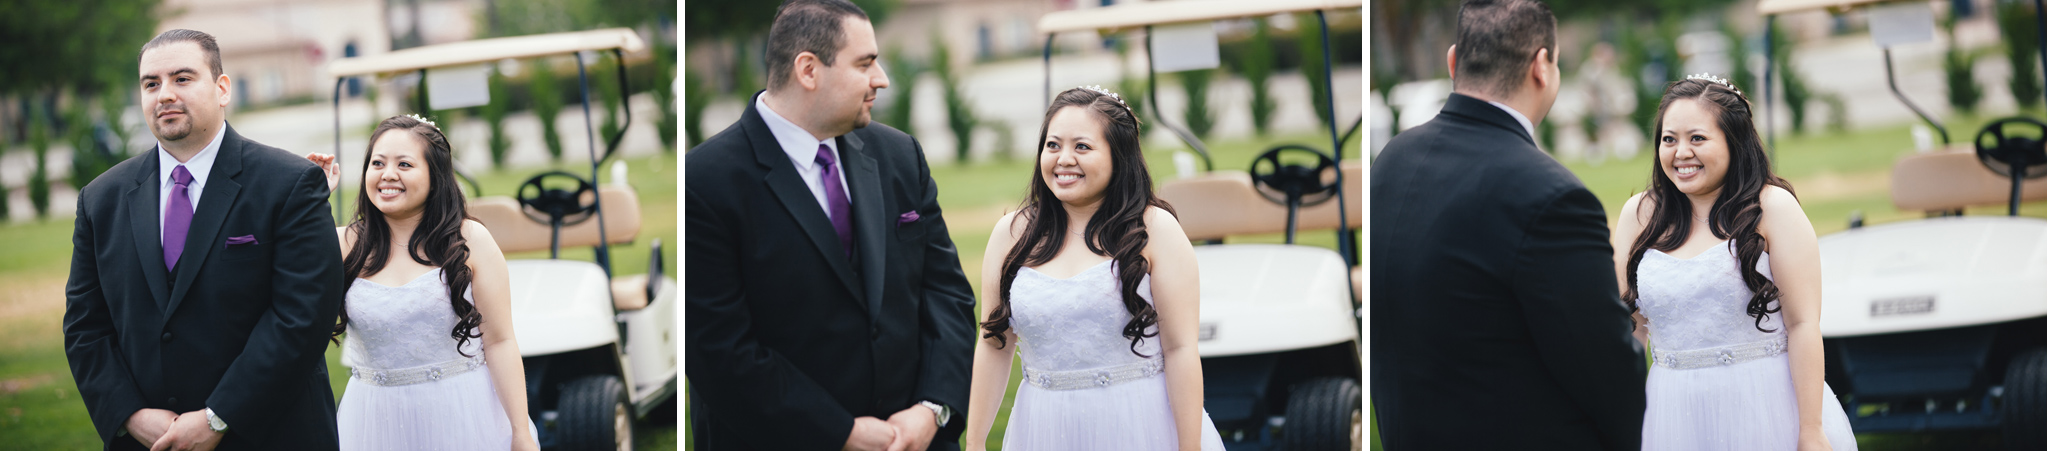 rlp-wedding-michelle+daniel005.jpg